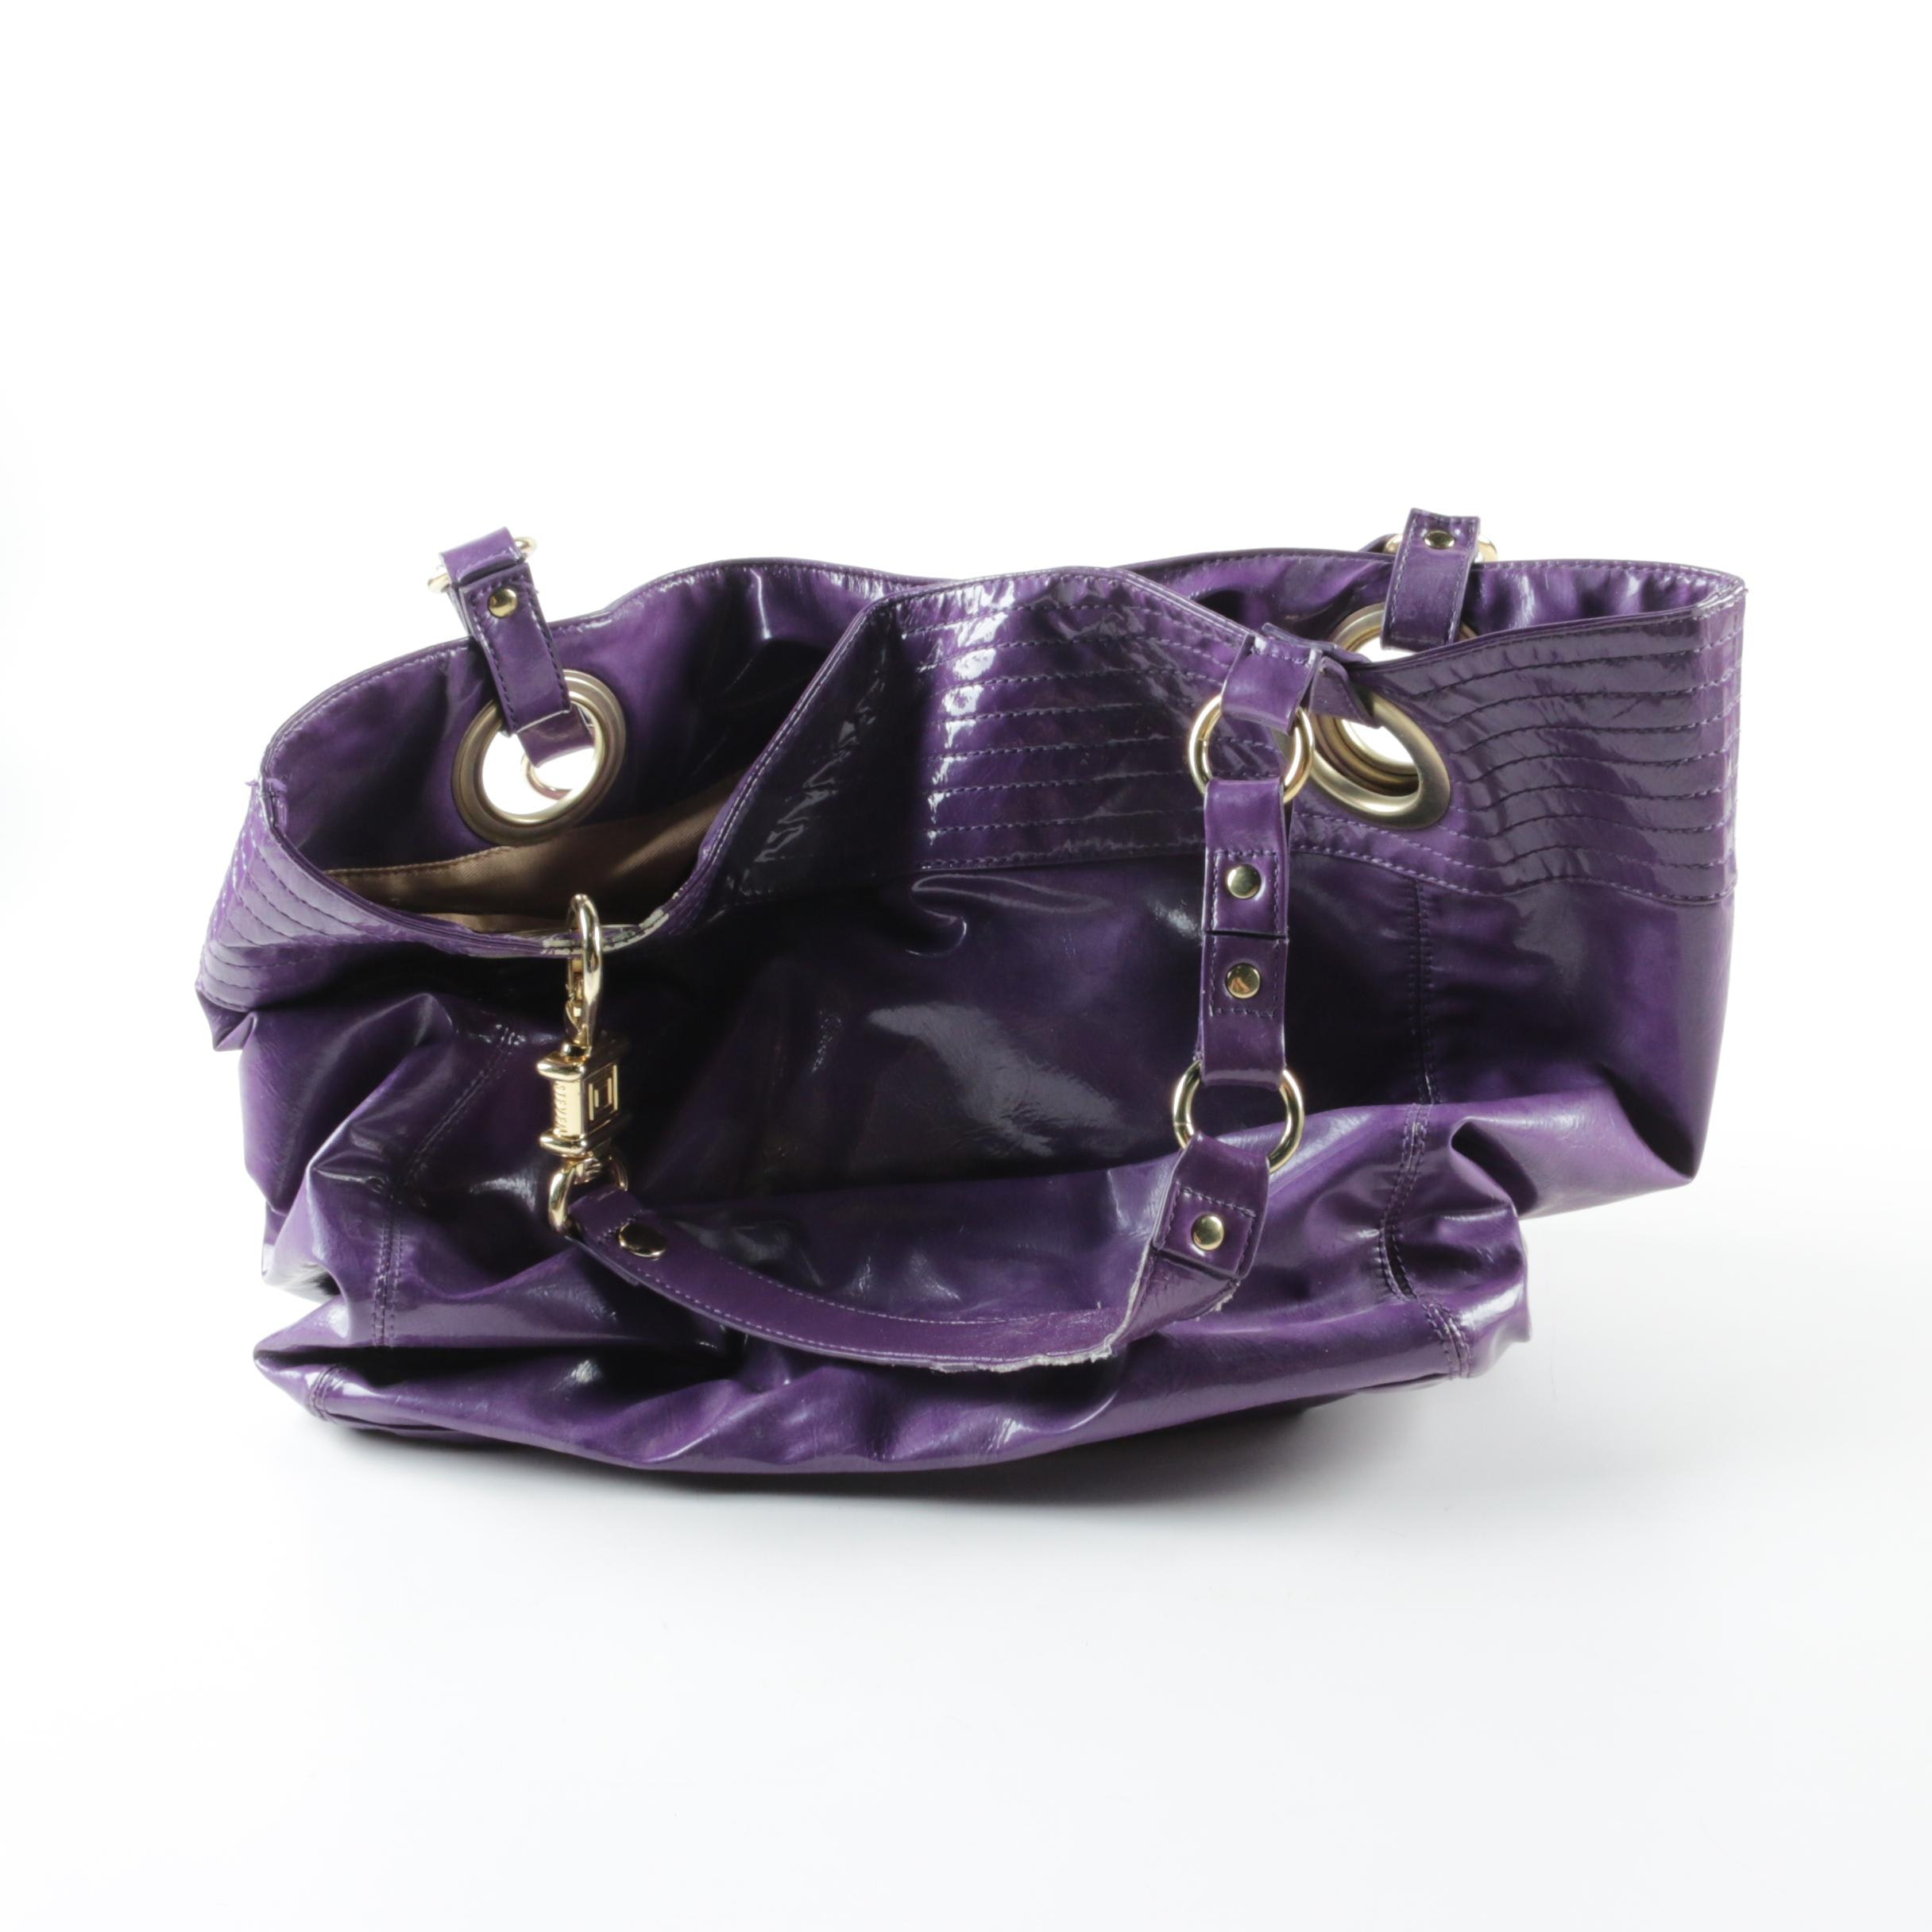 Steven by Steve Madden Purple Tote Bag